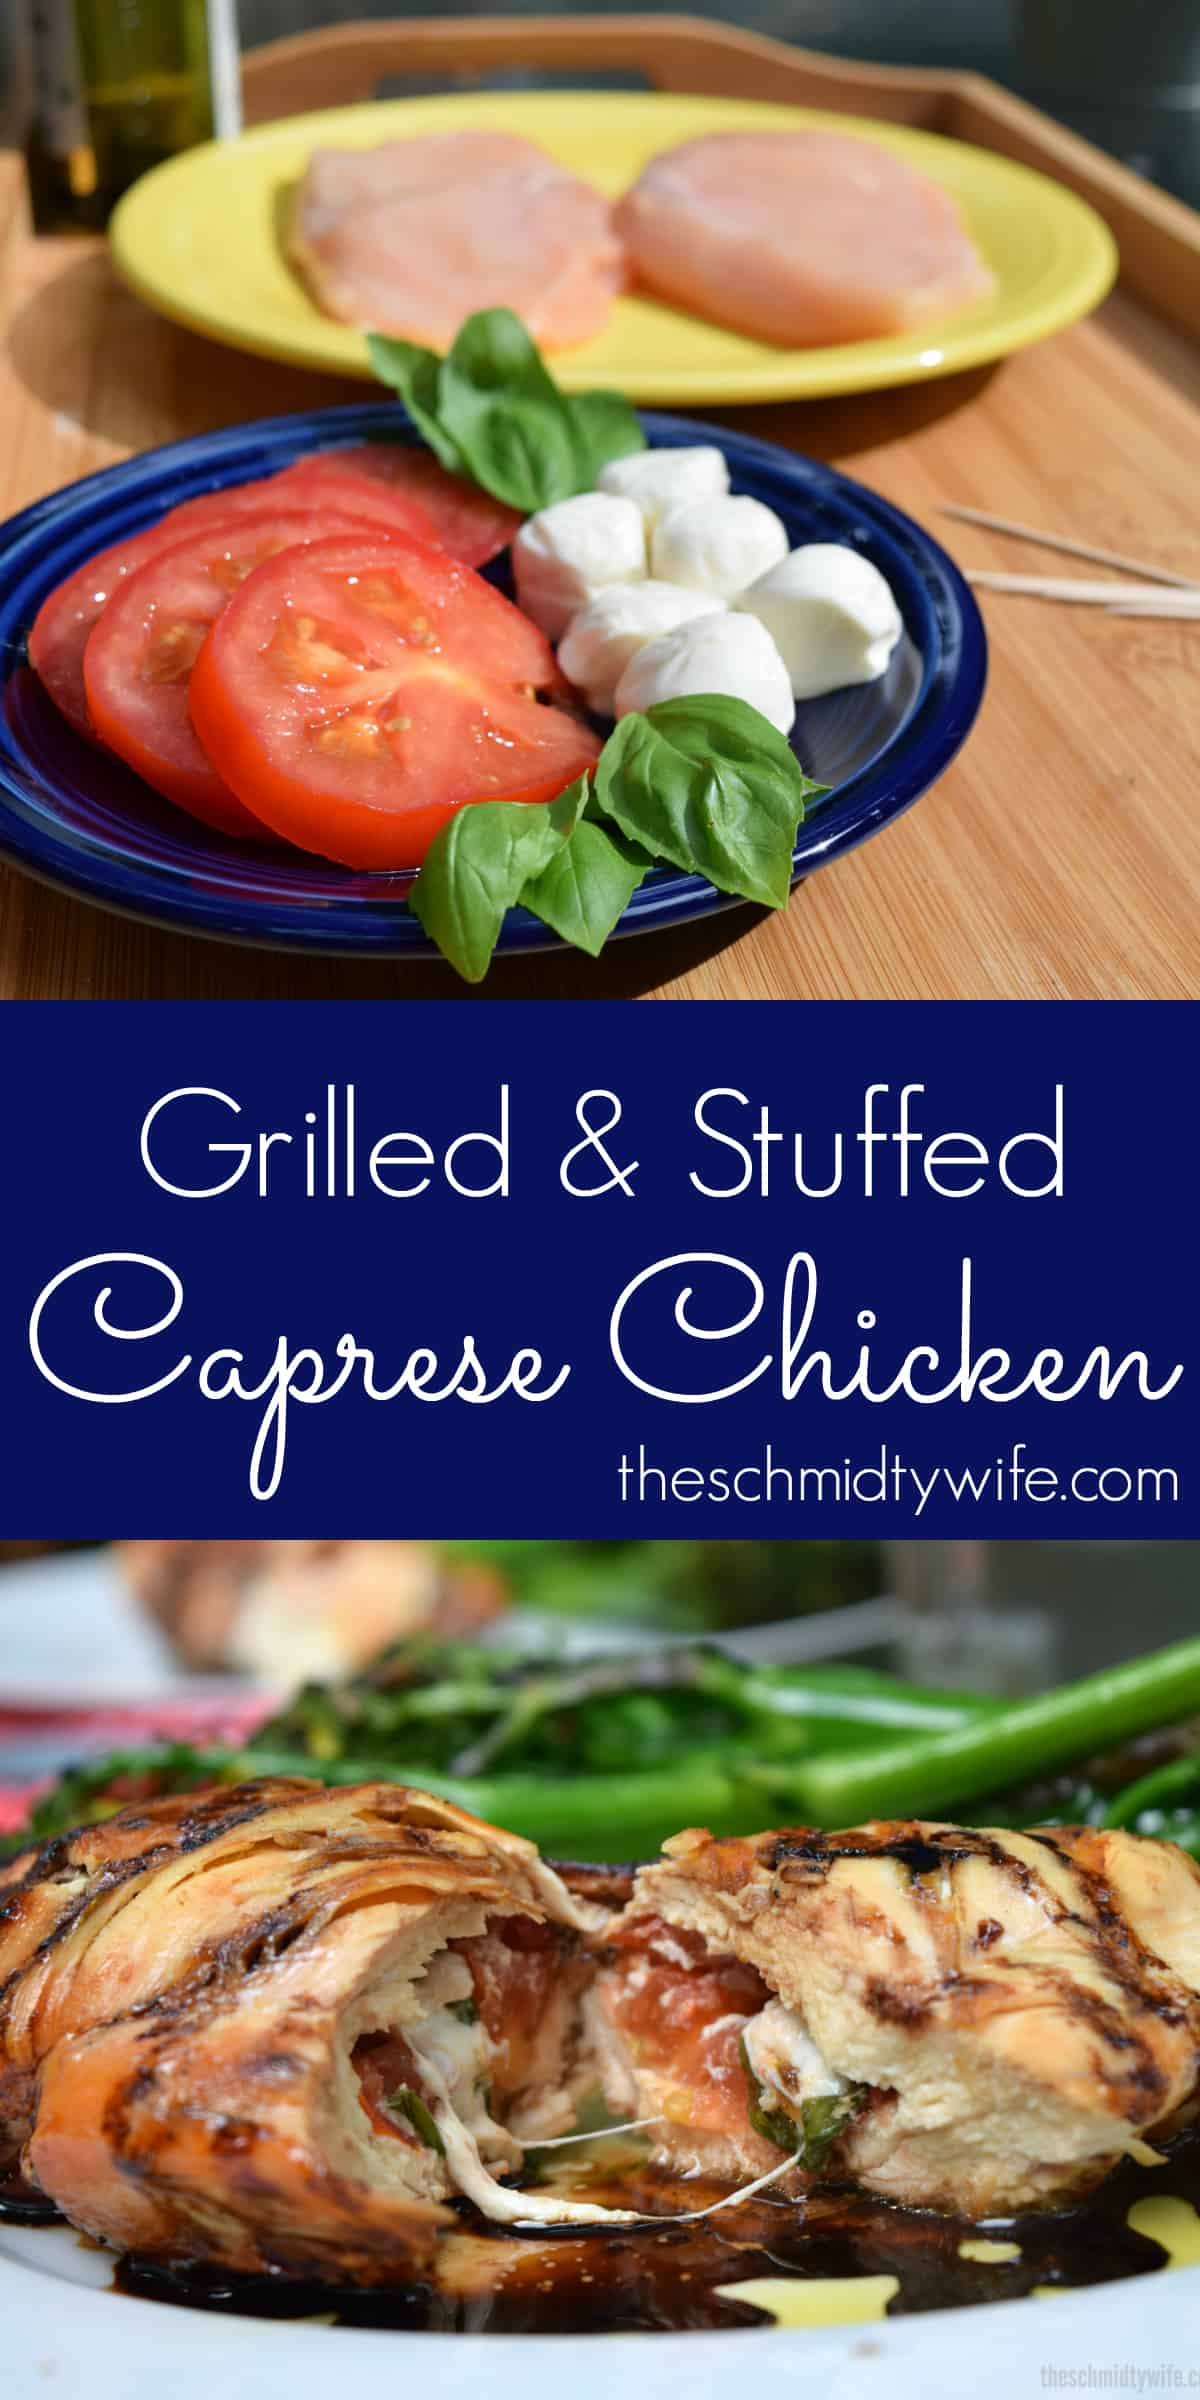 Grilled & Stuffed Caprese Chicken pinterest pin showing stuffed chicken cut in half with melty cheese